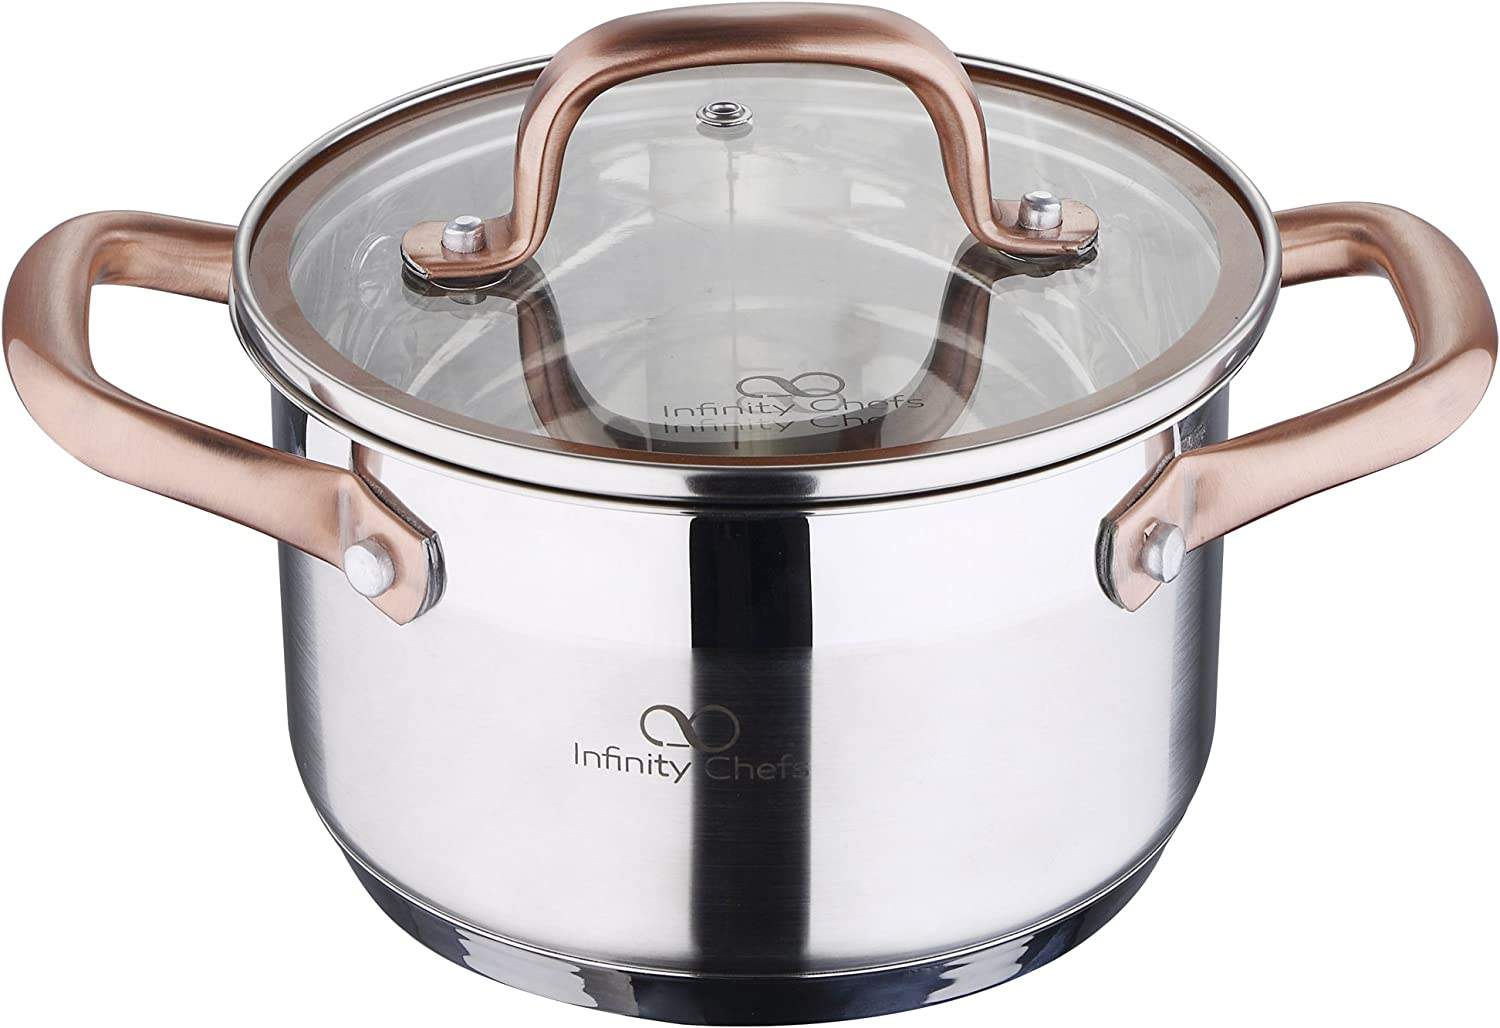 Infinity Chef Stock Pot with Lid Silver 16 Litre クリアランスsale 期間限定 cm x 10 新生活 8